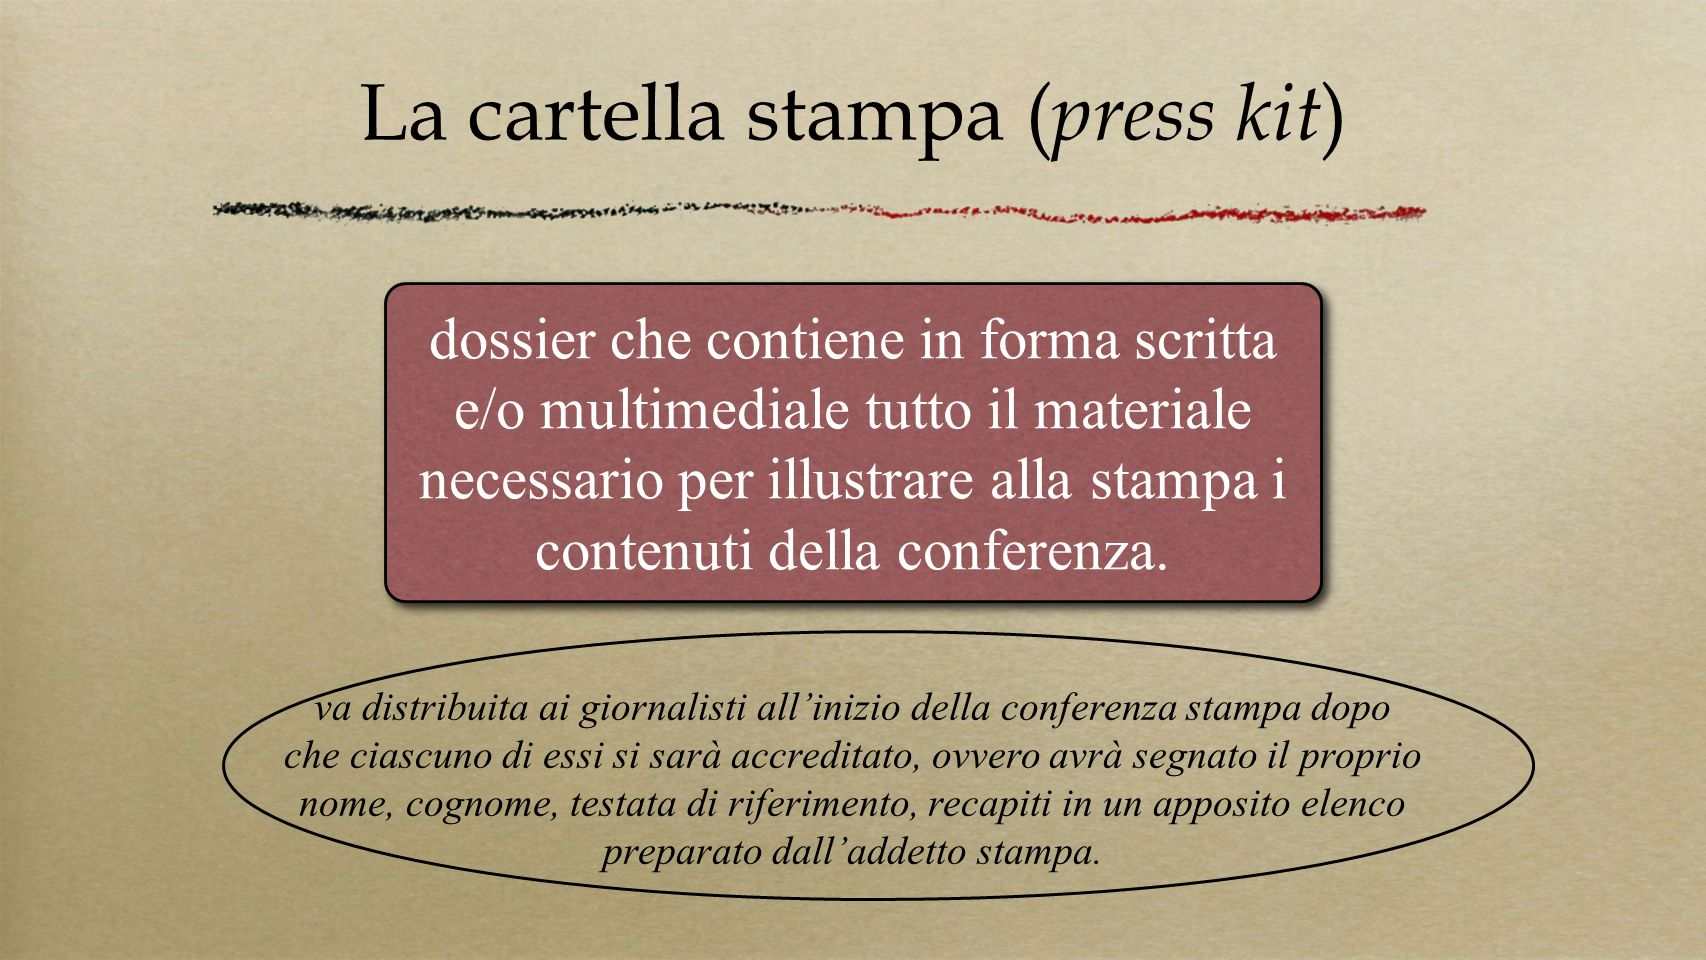 La cartella stampa (press kit)